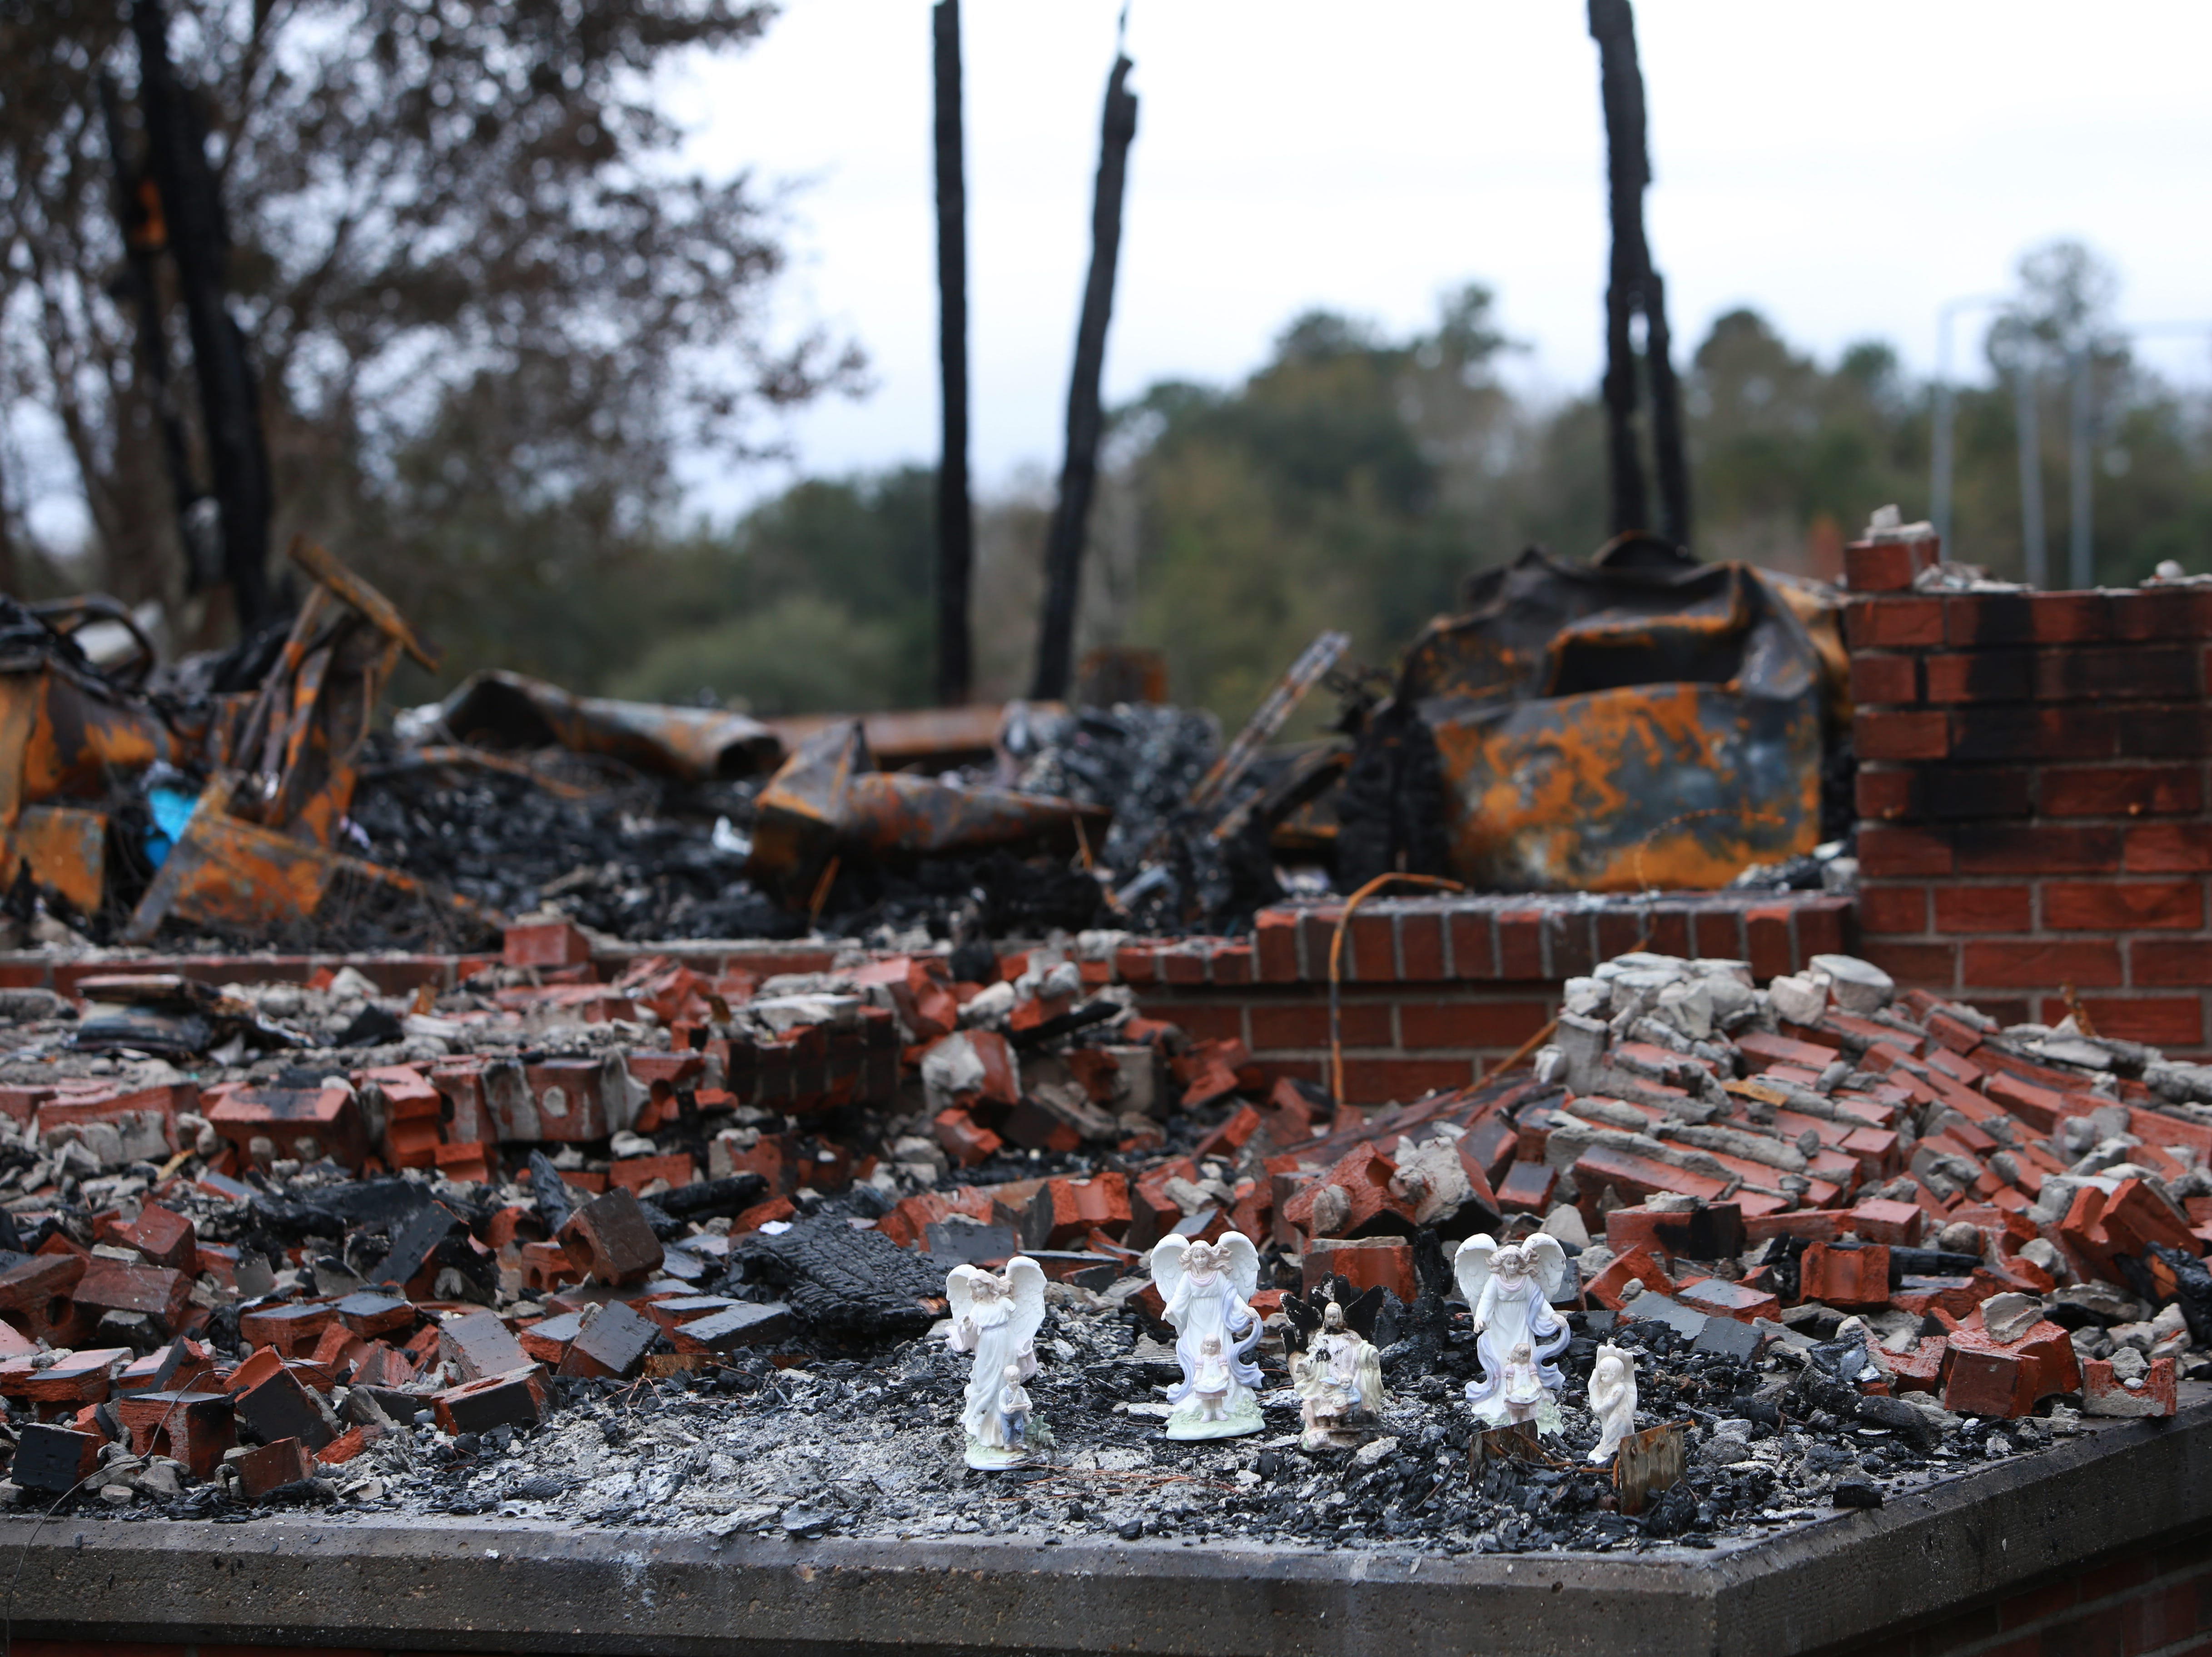 The only possessions that were left unscathed from a fire that destroyed the Haas family home in Kiln, Mississippi, were four blessed angel figurines guarding children. A fifth angel also remained. Her backside, her wings, were burned in the fire on November 26, 2018.